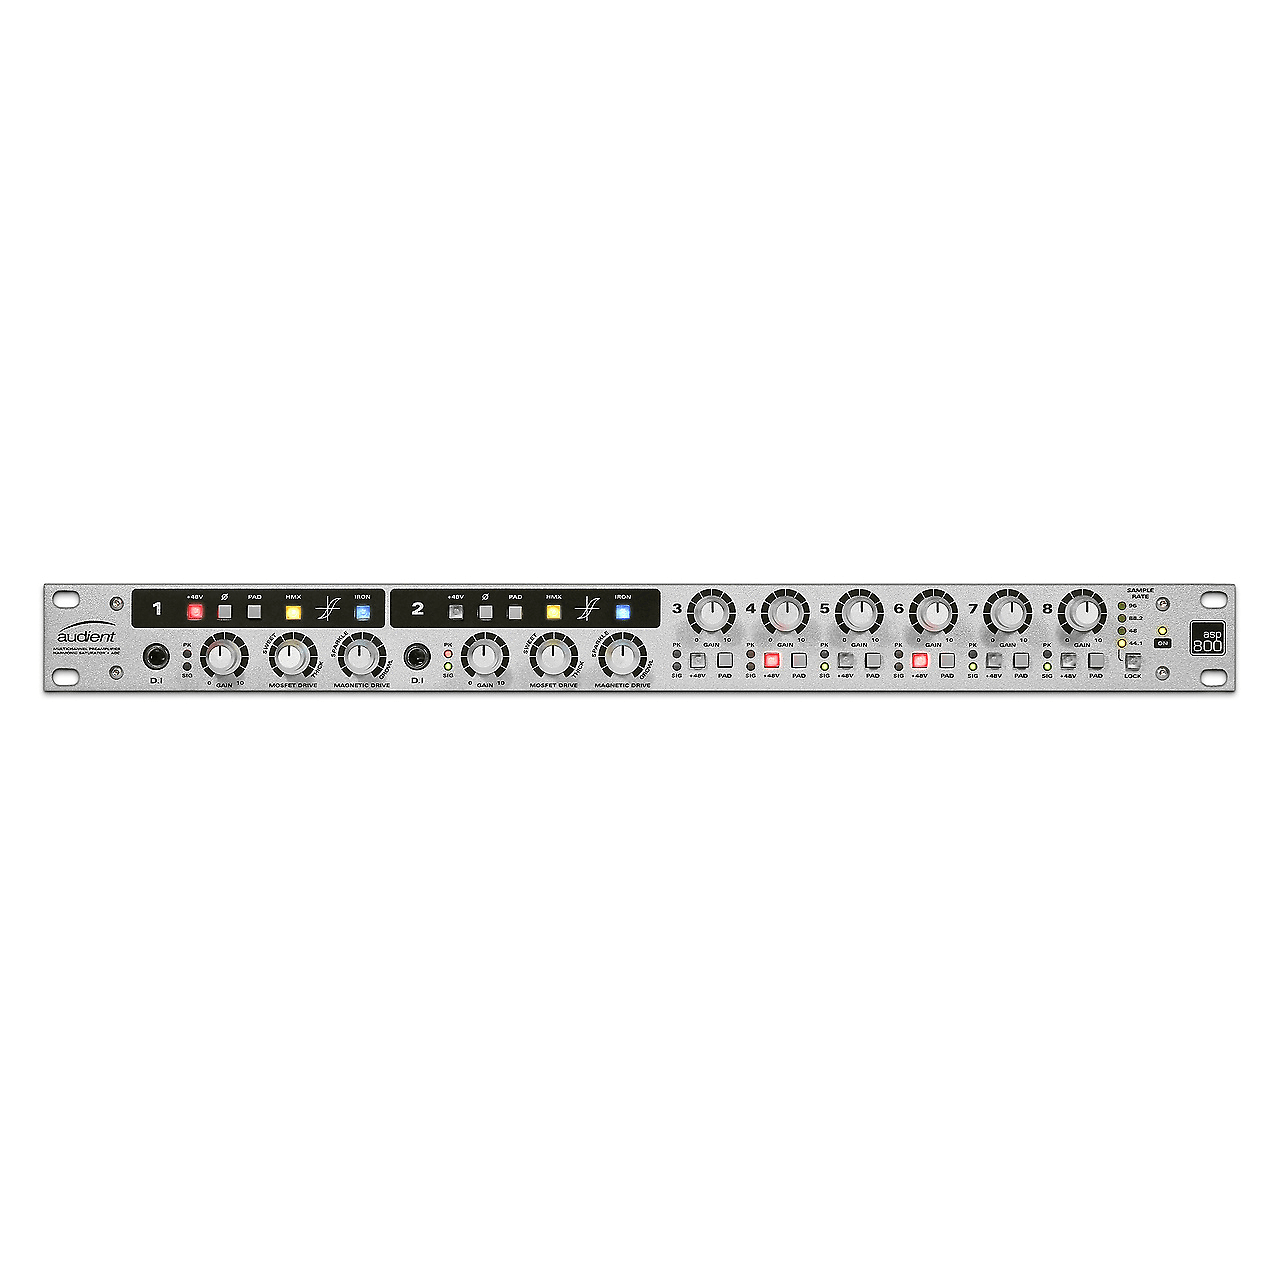 Audient Asp800 8-Channel Mic Pre & Adc W/ 2 Channels Of Hmx & Iron